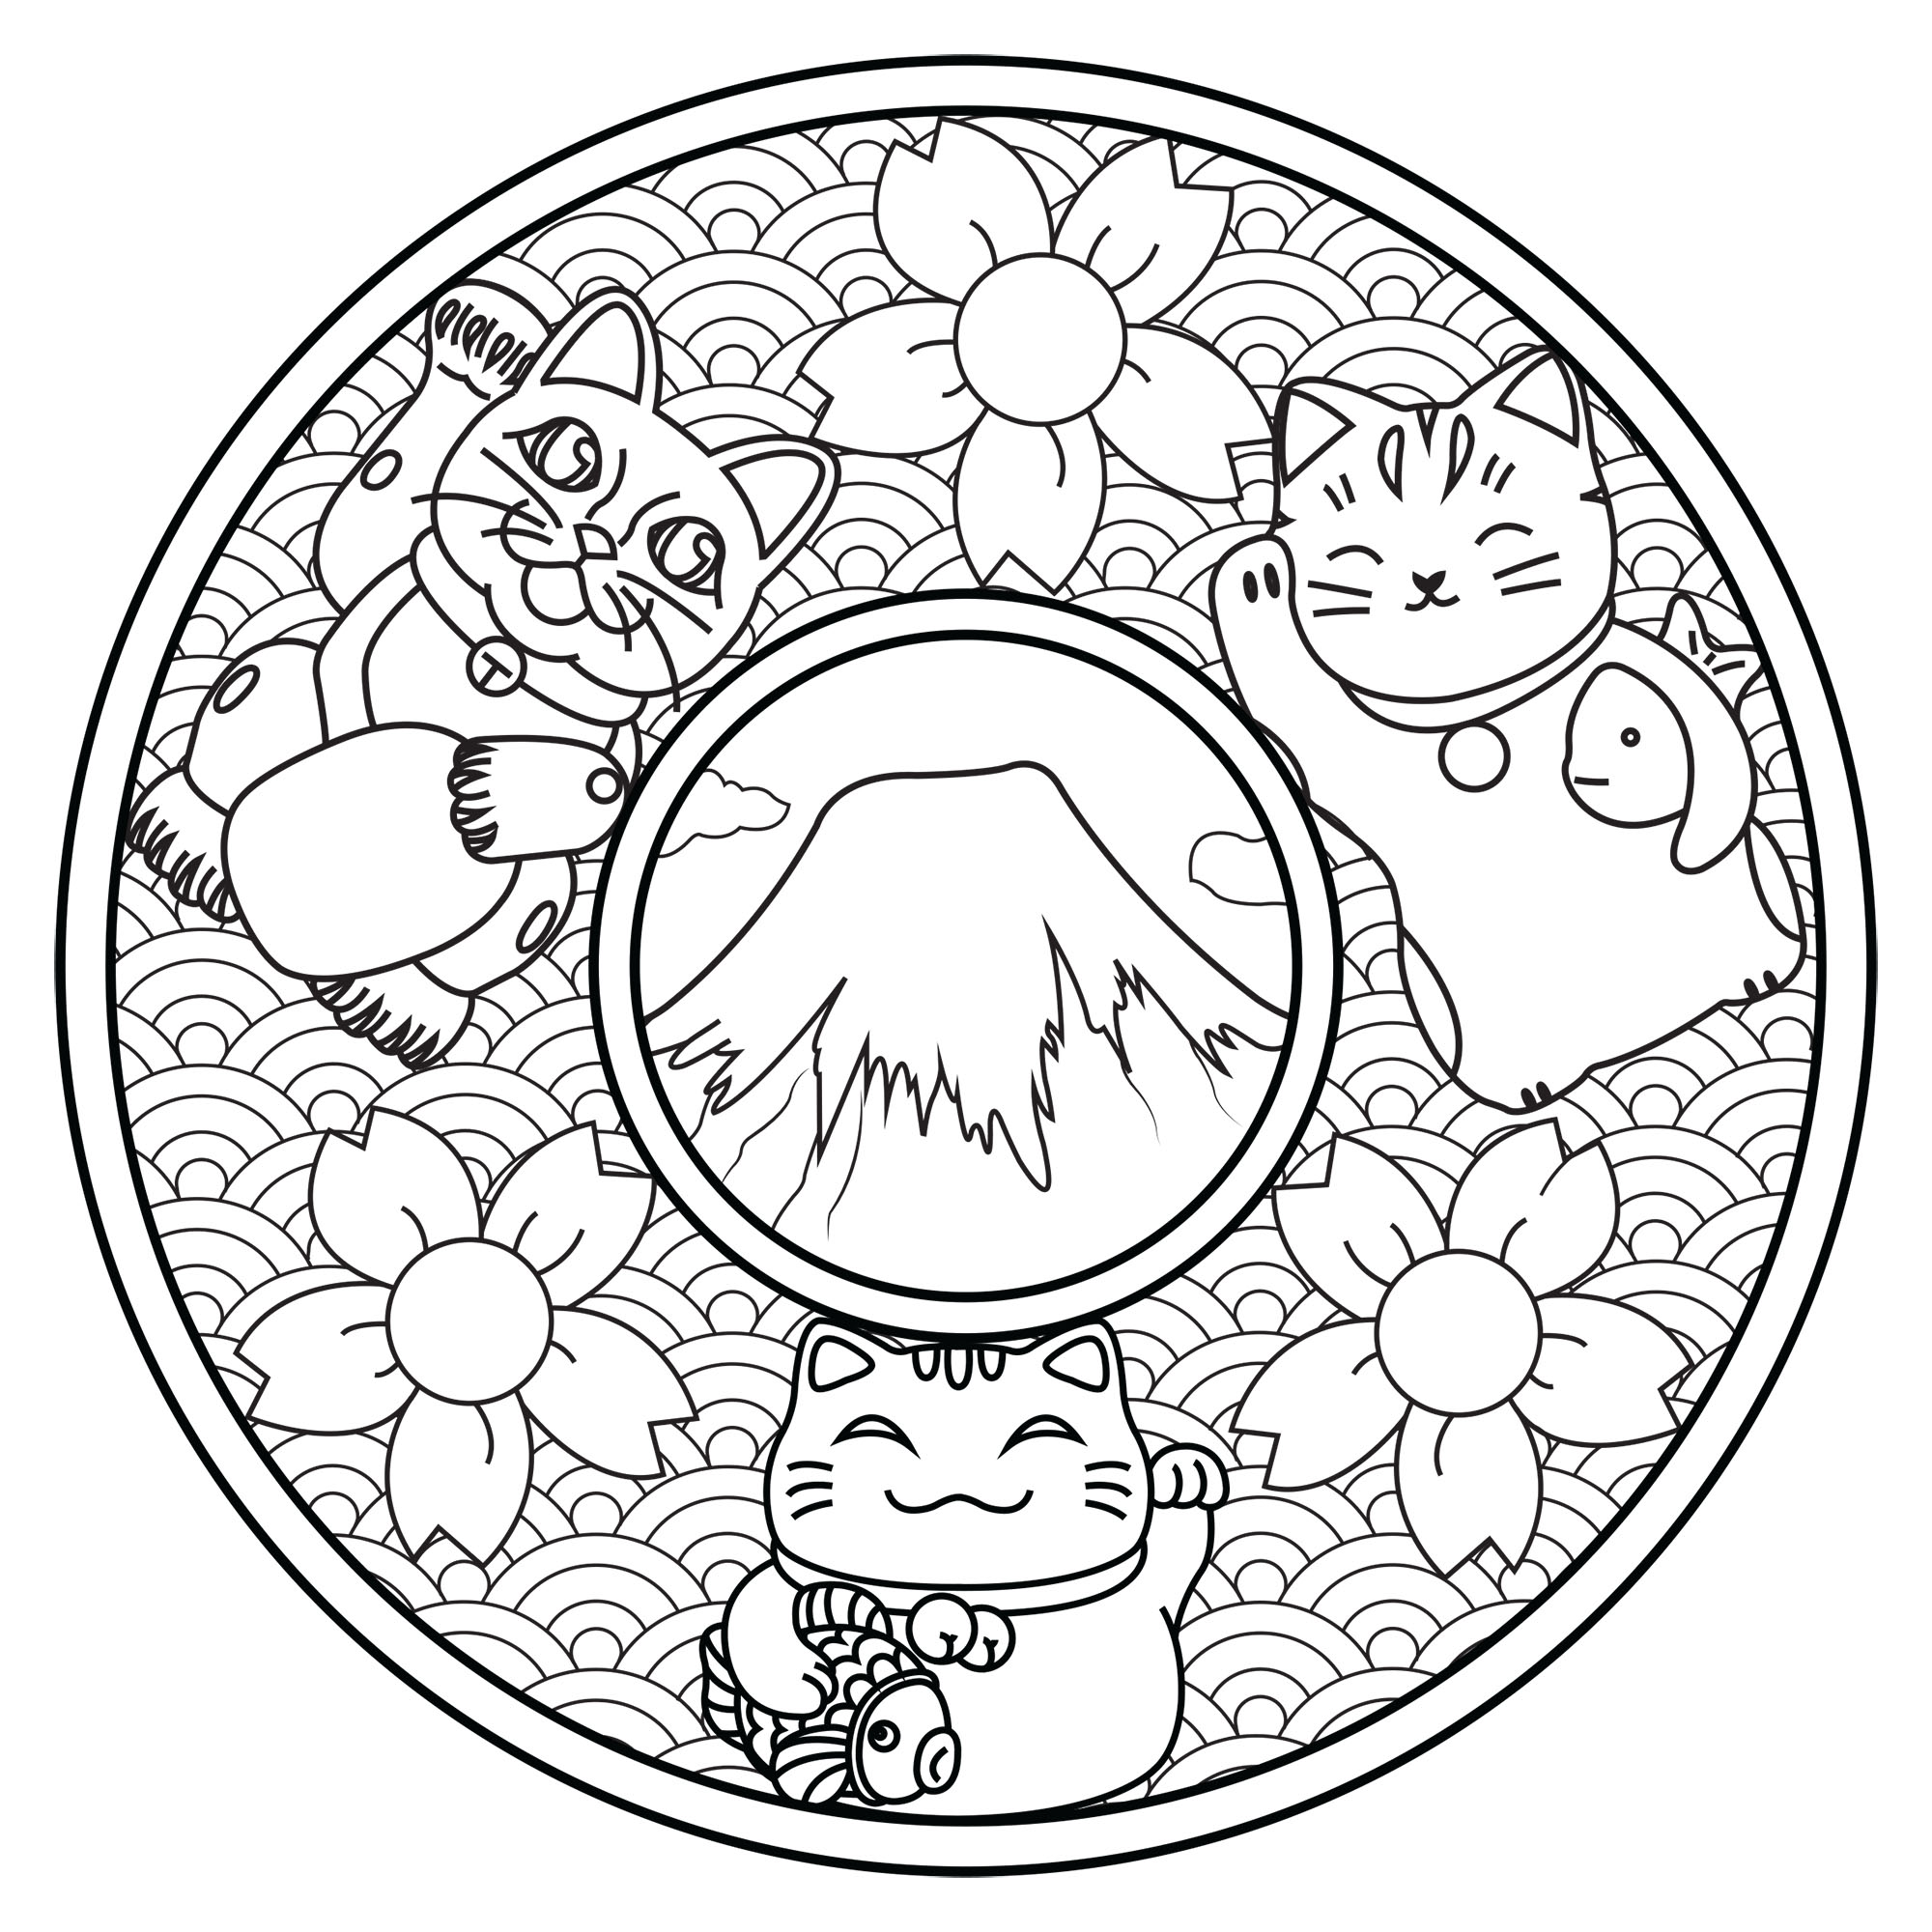 Color these three cute cats on this Mandala inspired by Japan : Mount Fuji, Cherry Blossom flowers, waves ...